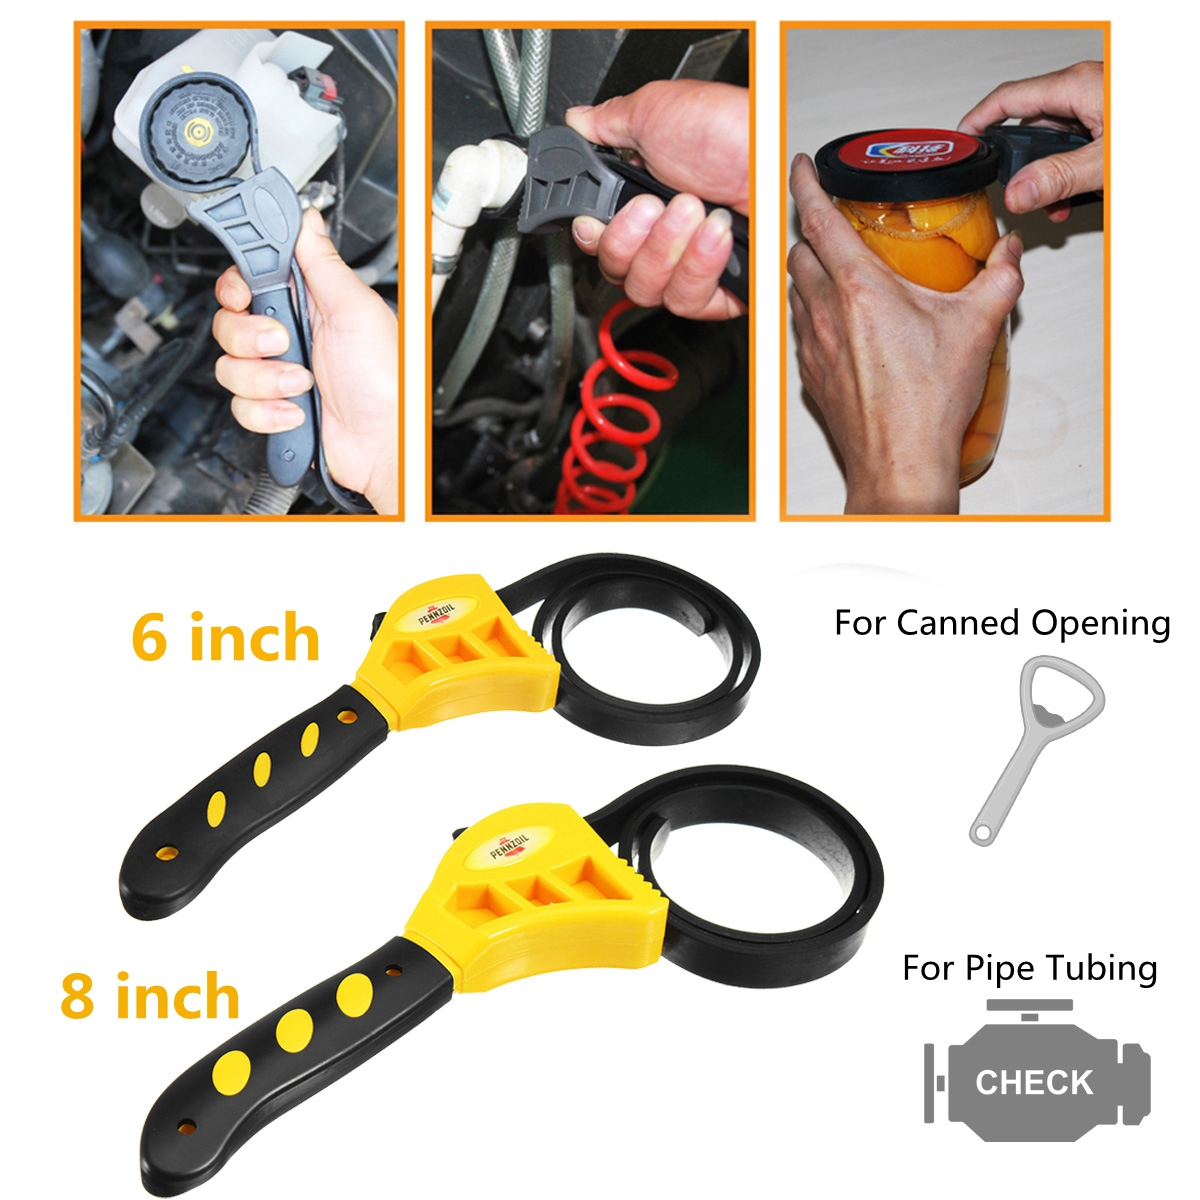 Rubber Strap Wrench Universal Black Wrench Adjustable Spanner Opener